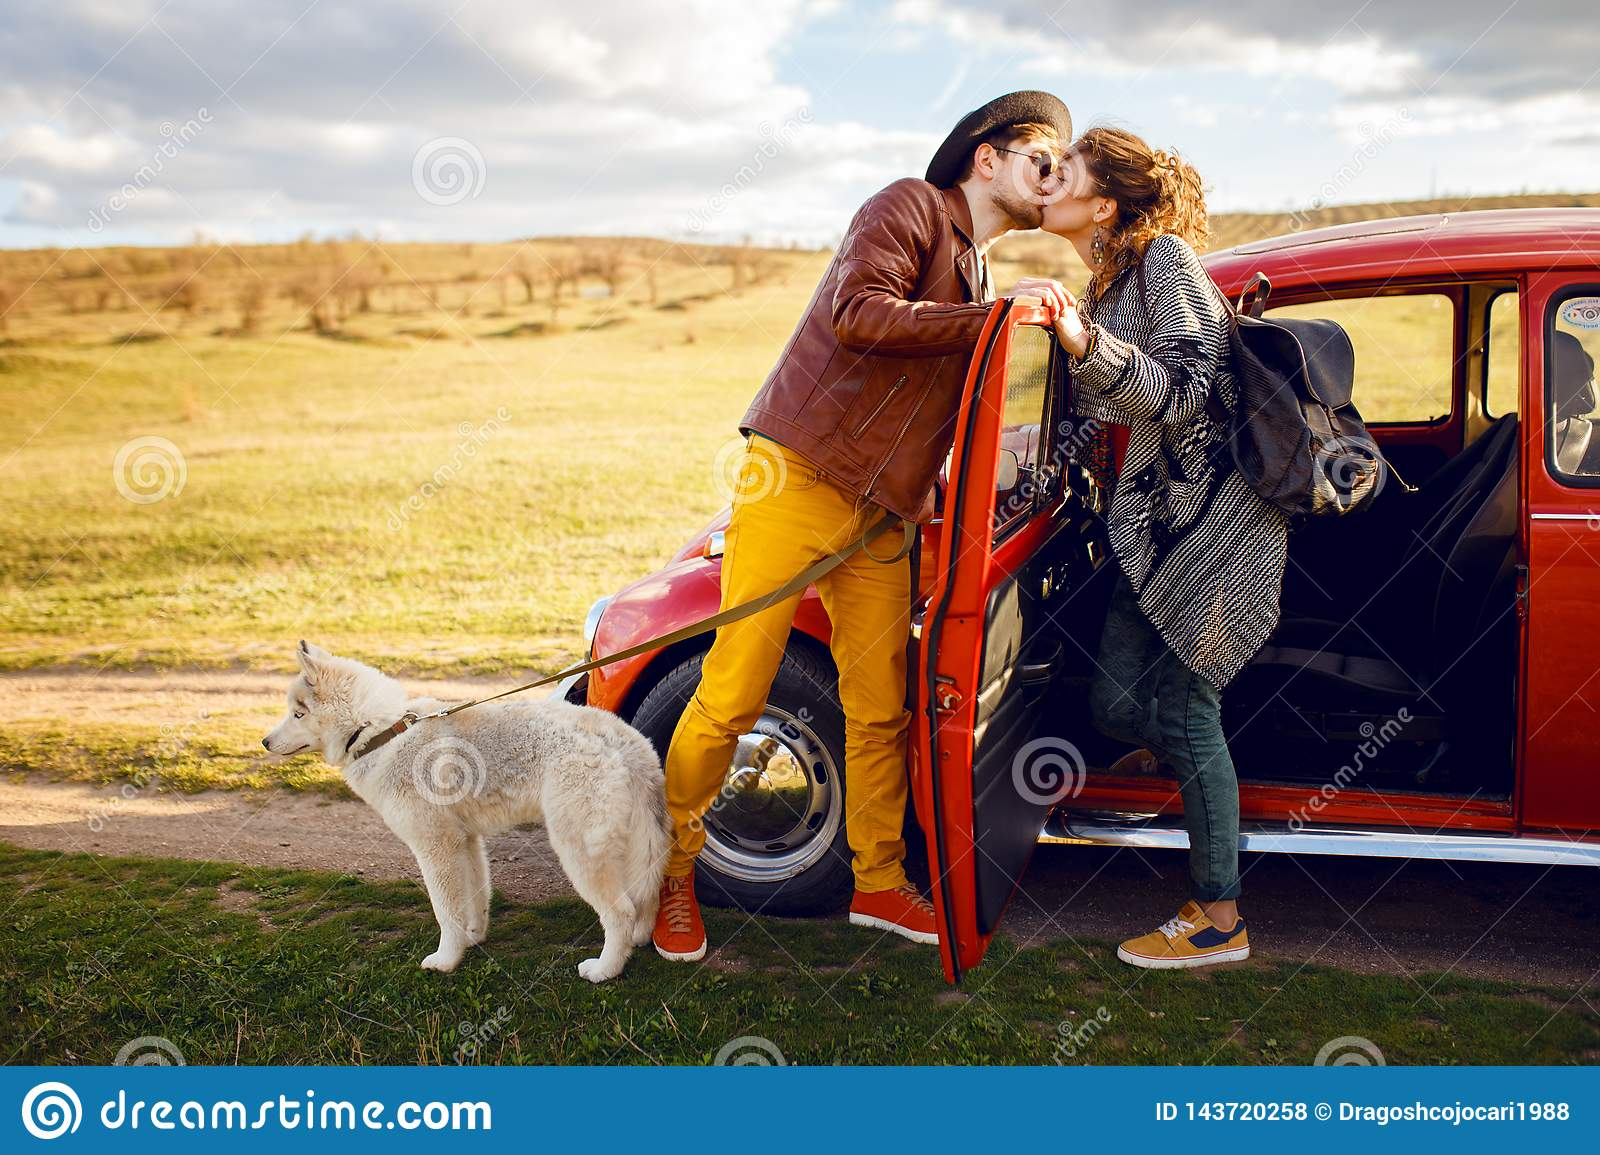 Beautiful portrait of young couple, near vintage red car, with their husky dog, isolated on a nature background.